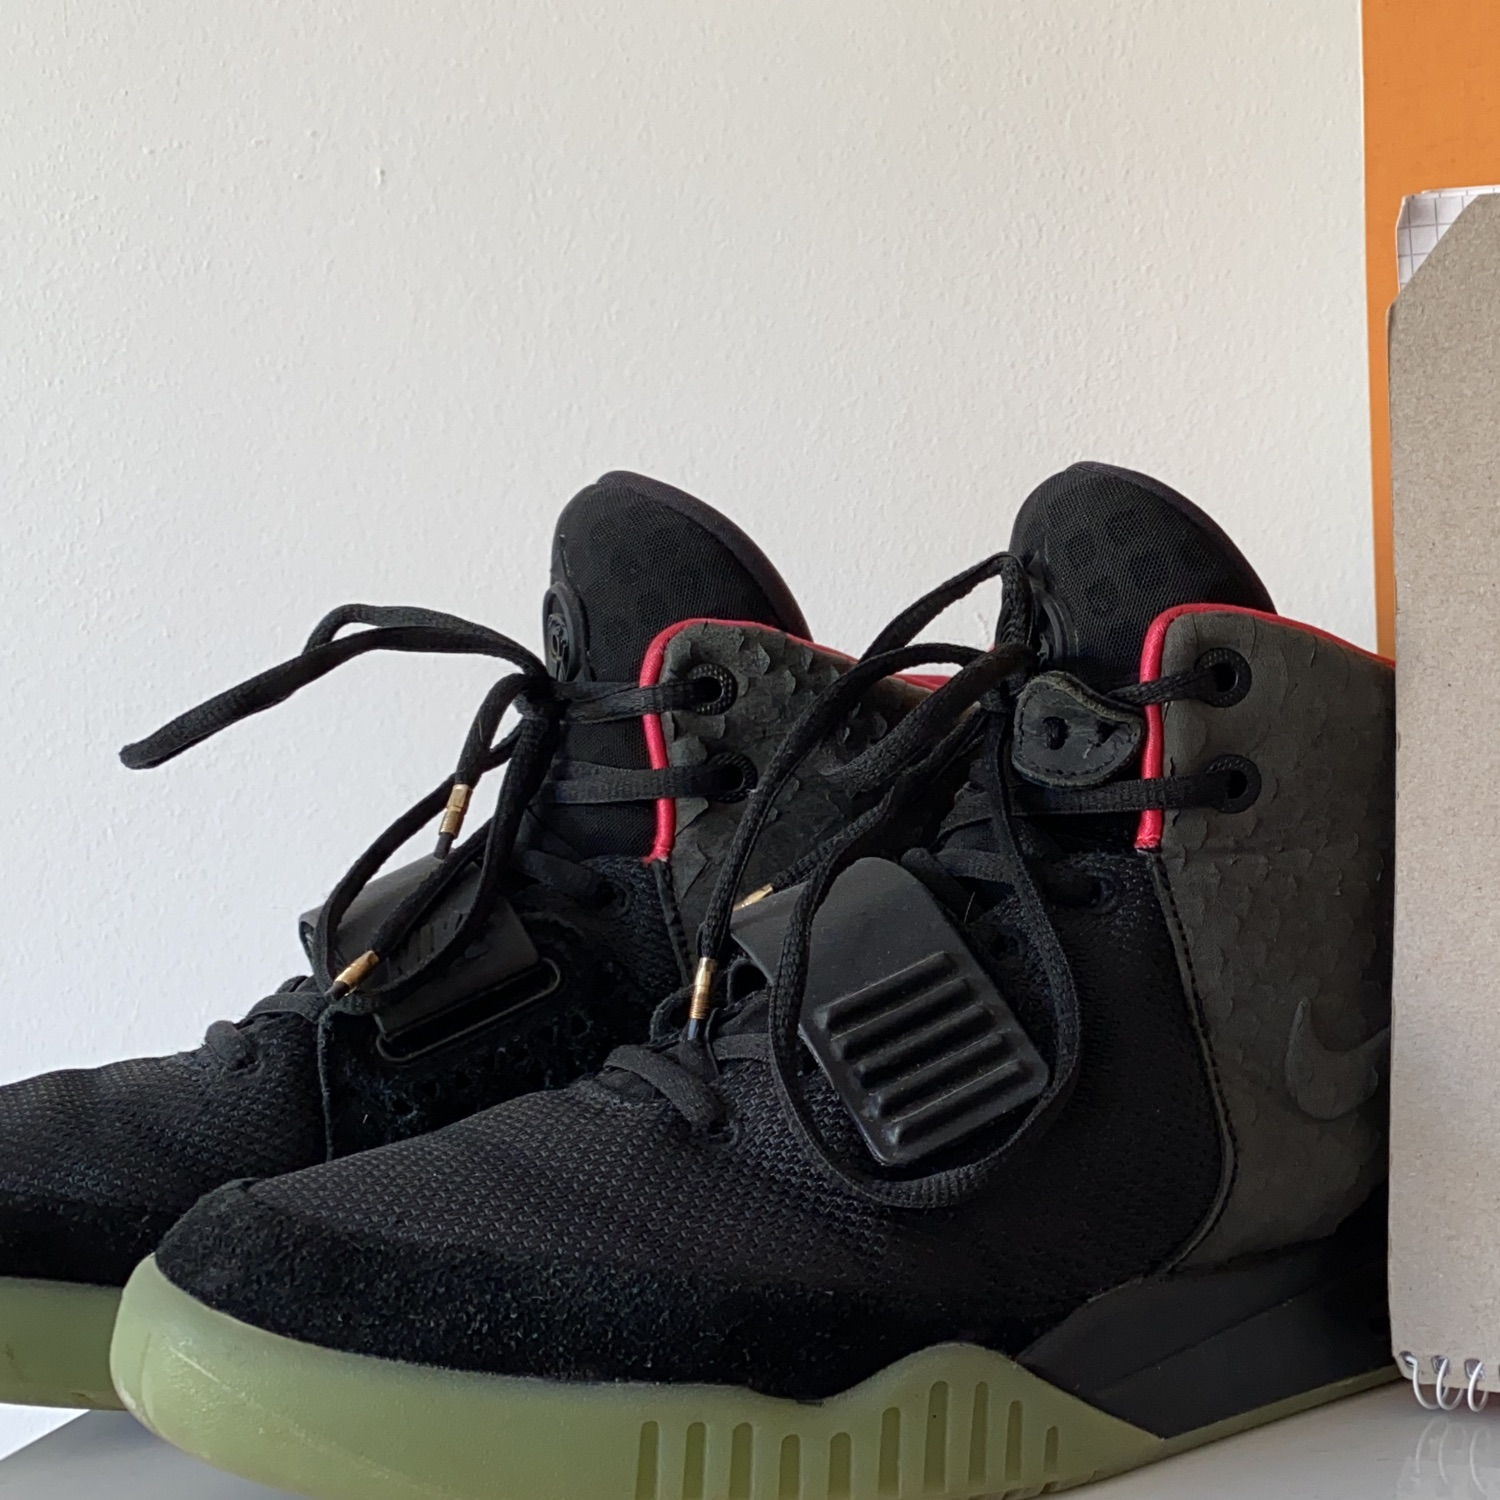 Pekkadillo a lo largo puente  nike air yeezy 2 price in india cheap online